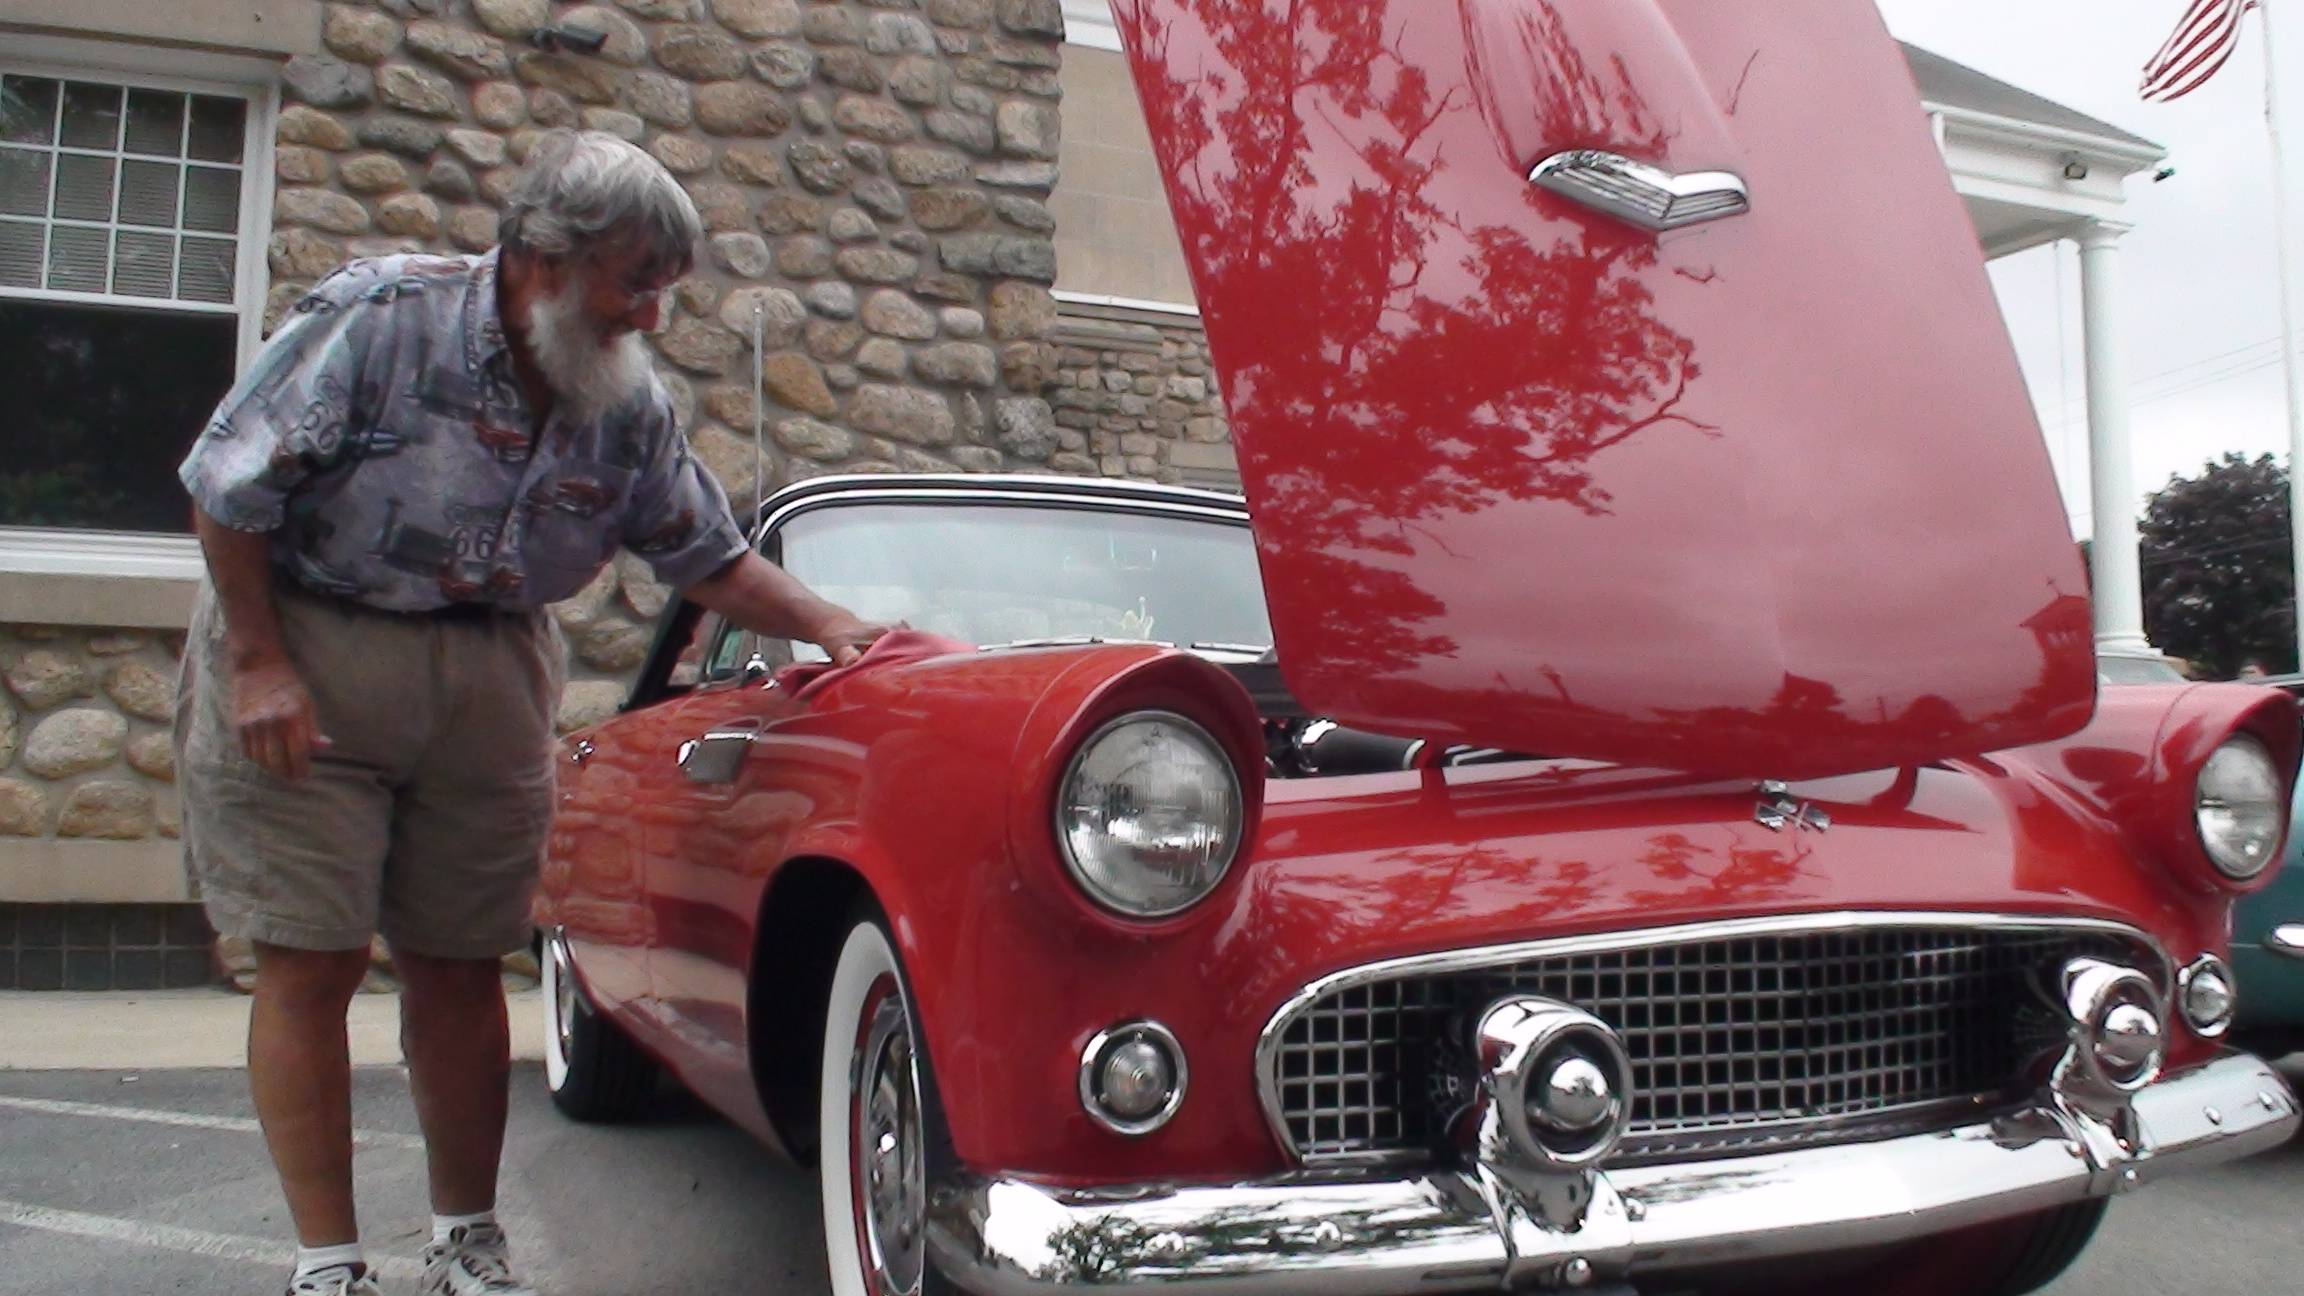 1955 Thunderbird with a great story